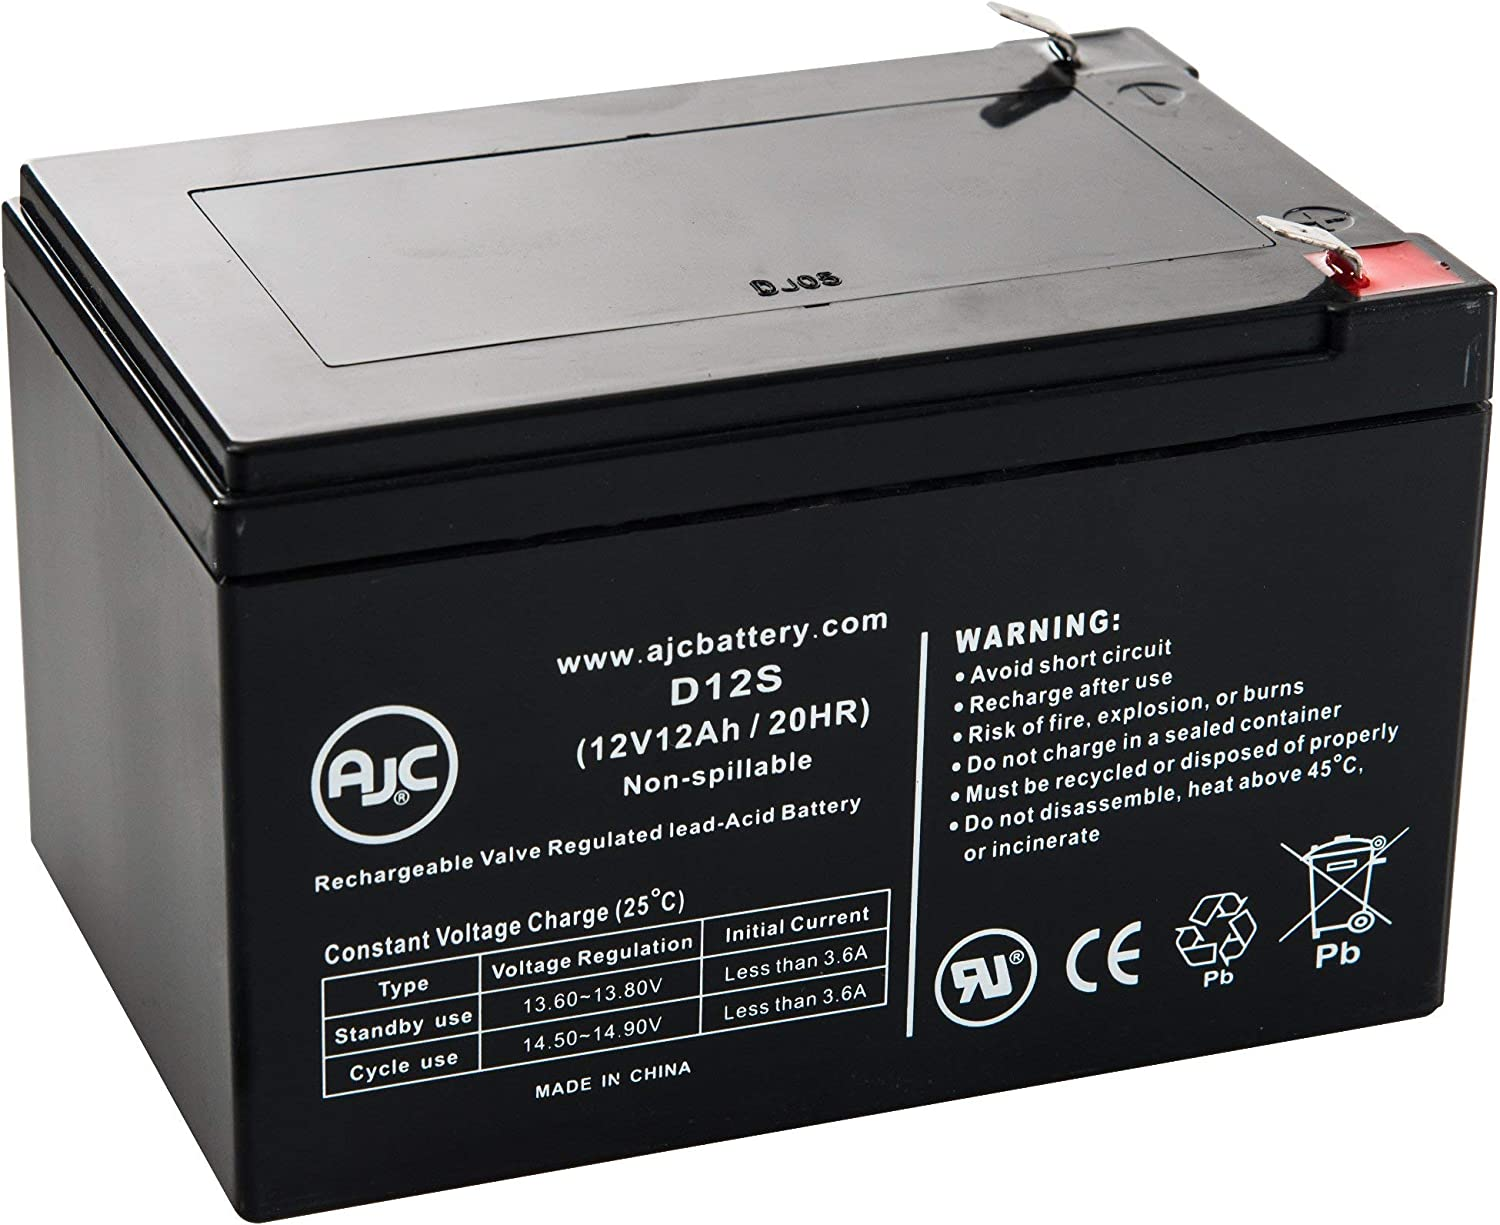 This is an AJC Brand Replacement APC 520ES 12V 12Ah UPS Battery